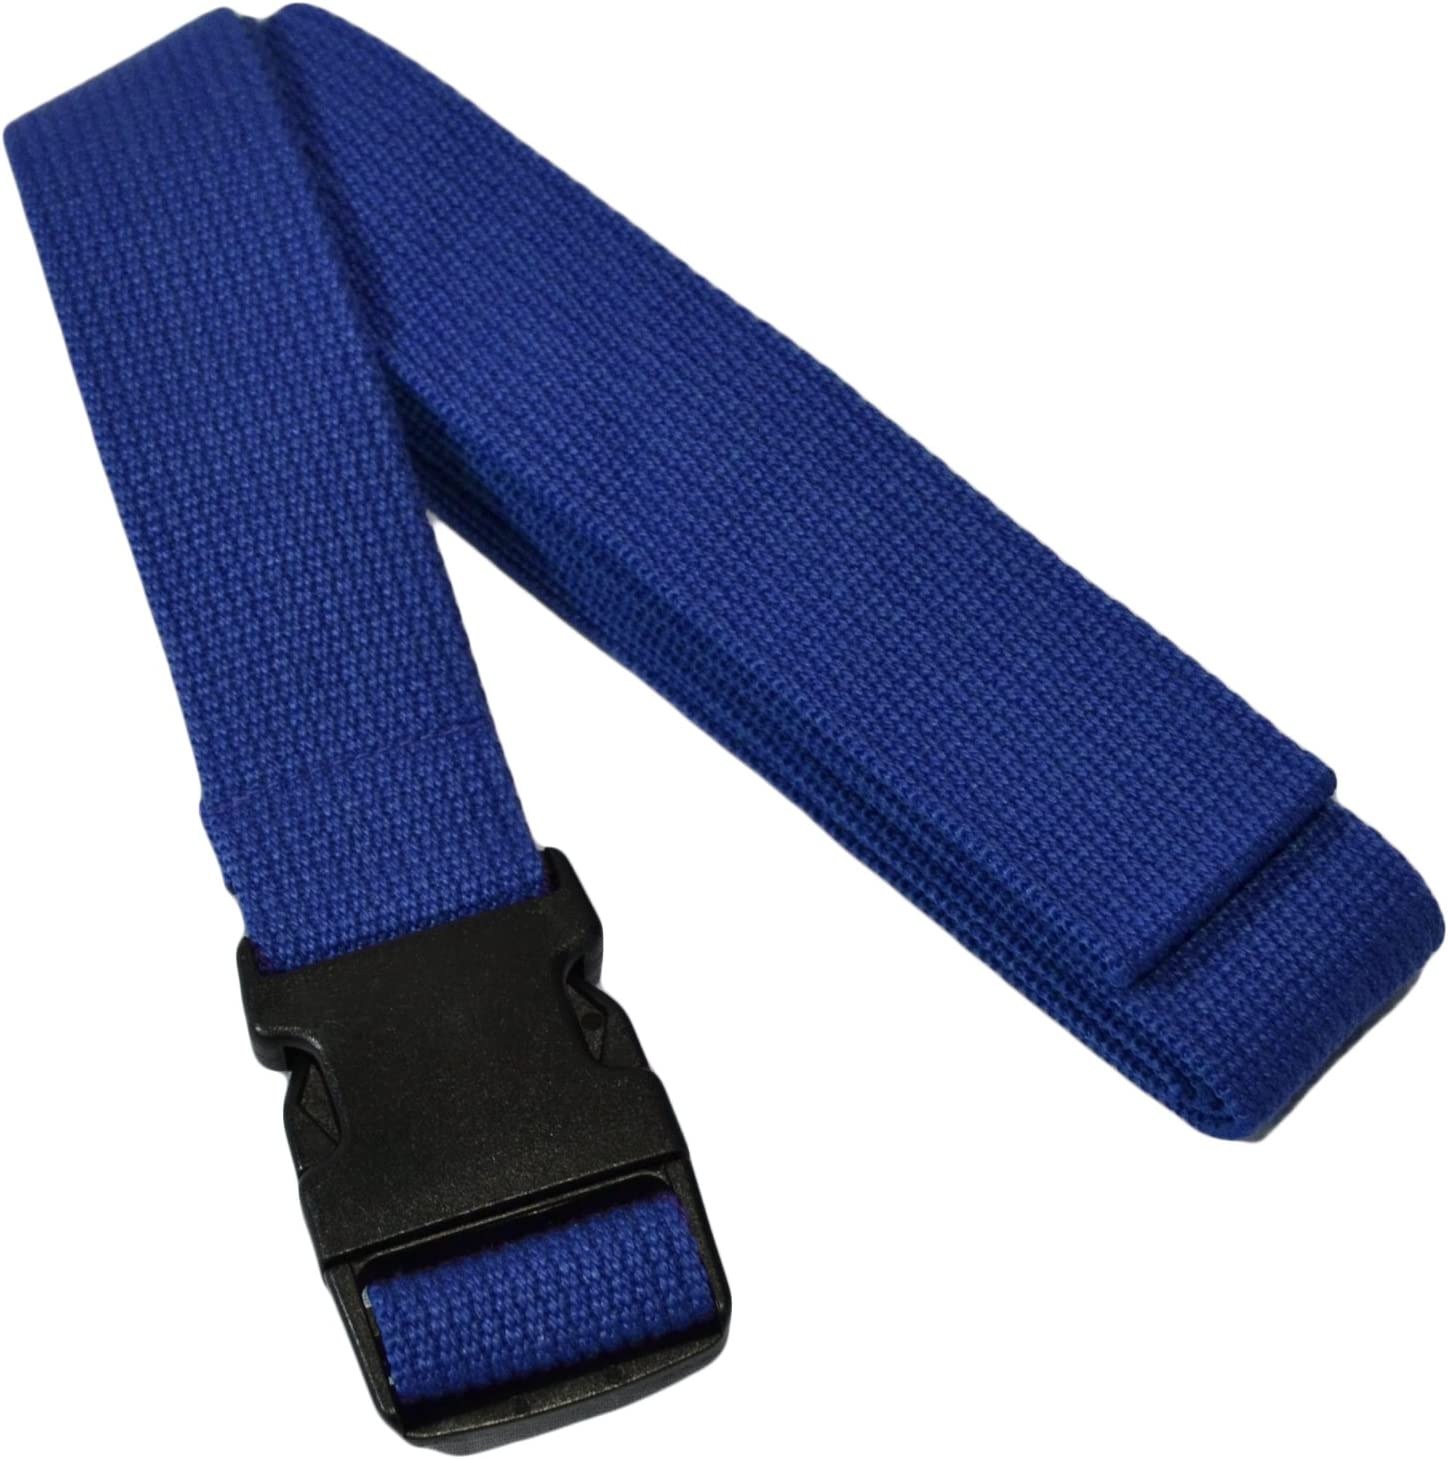 YogaAccessories 8 Pinch Buckle Cotton Yoga Strap